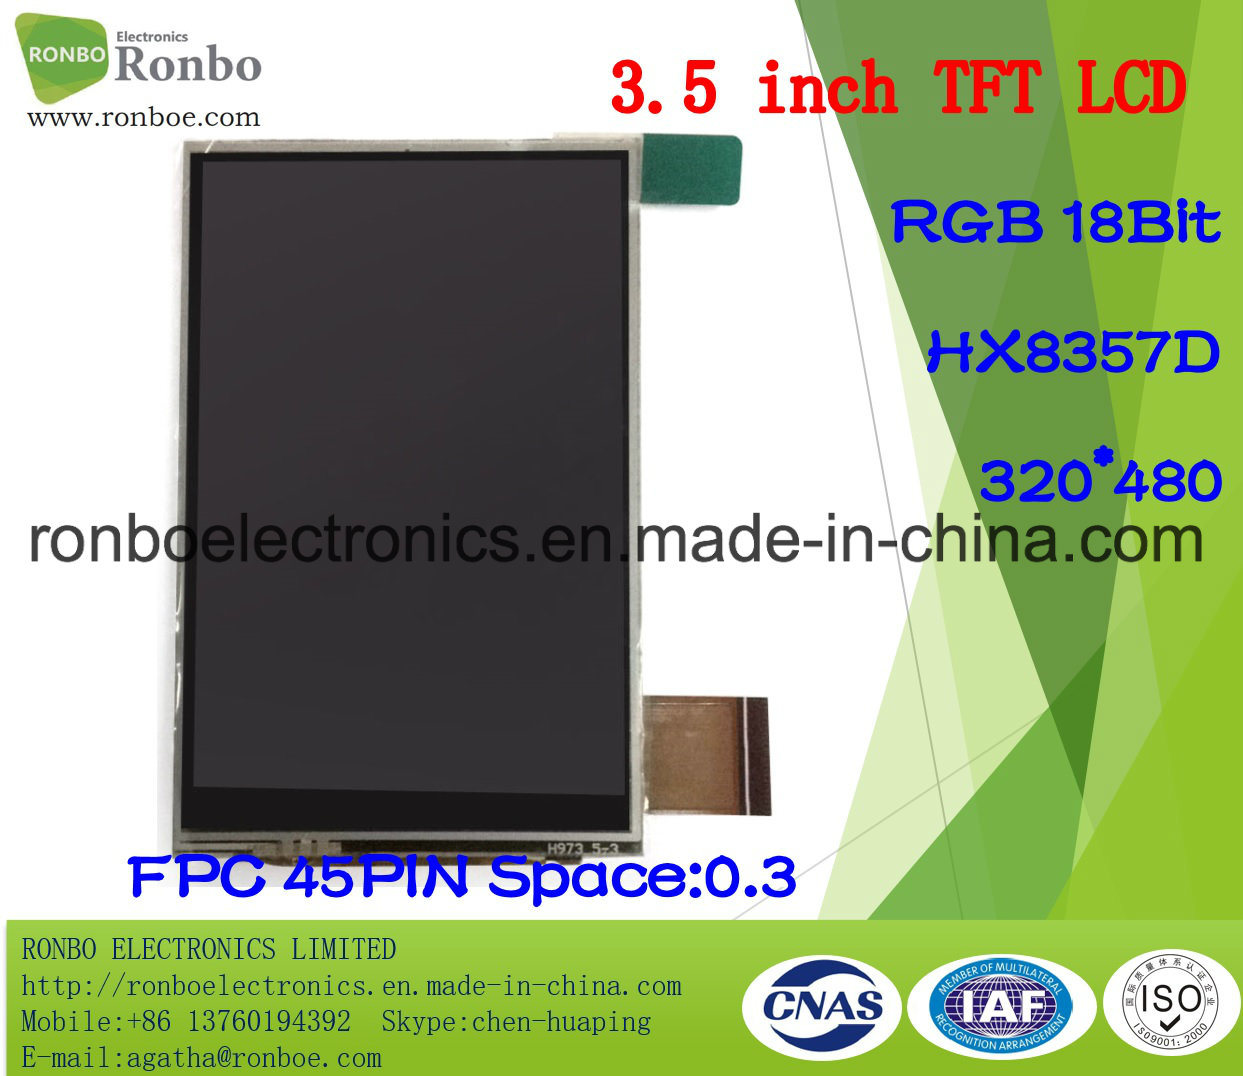 "3.5"" 320X480 RGB 18bit 45pin TFT LCD Screen with Touch Panel"